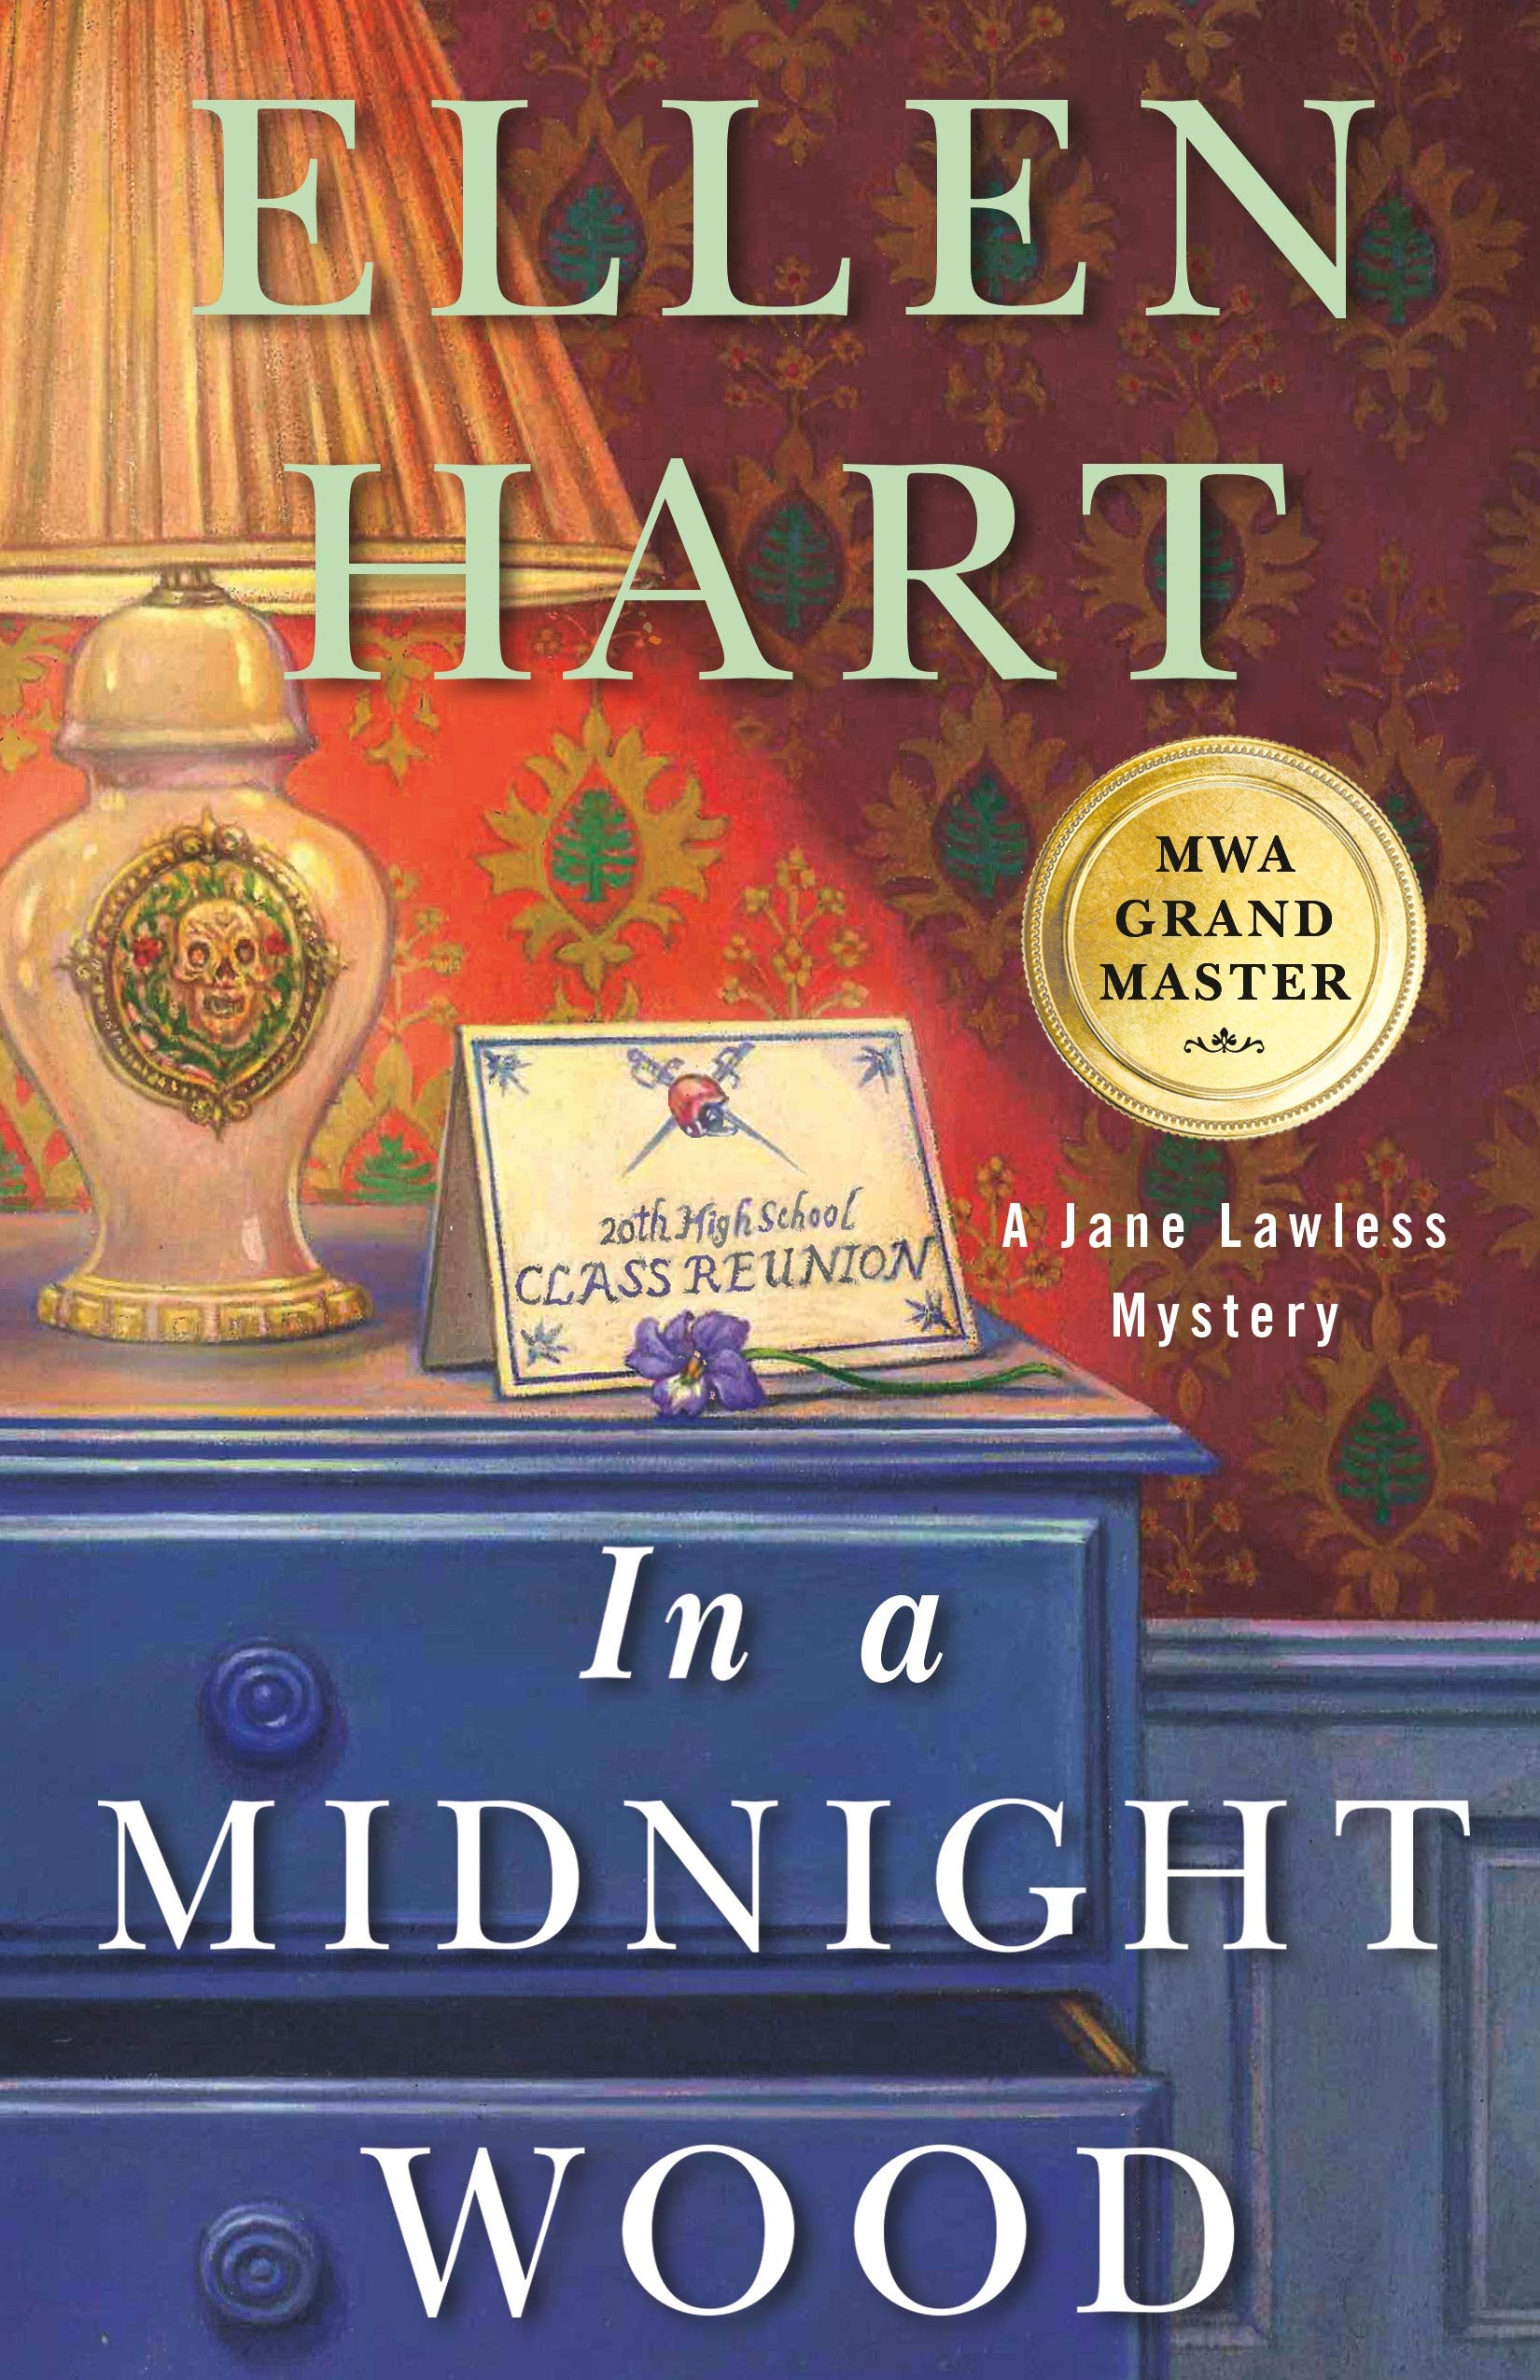 Amazon.com: In a Midnight Wood: A Jane Lawless Mystery (Jane Lawless Mysteries (27)) (9781250308443): Hart, Ellen: Books